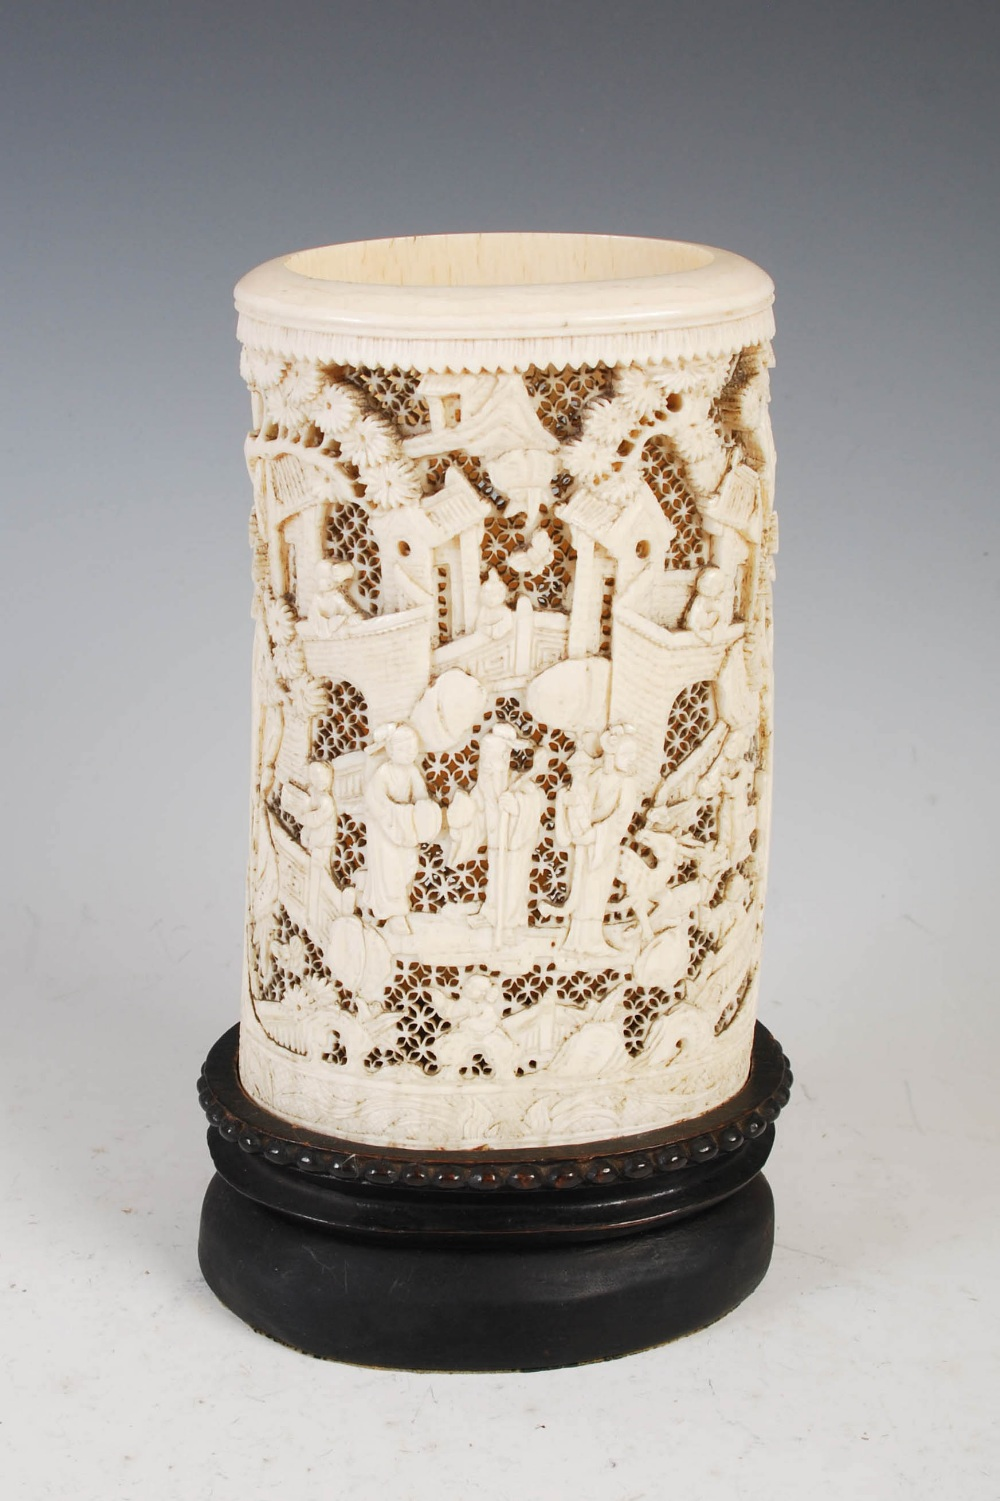 A Chinese ivory tusk vase, Qing Dynasty, carved with figures, pavilions and pine trees on a - Image 2 of 5